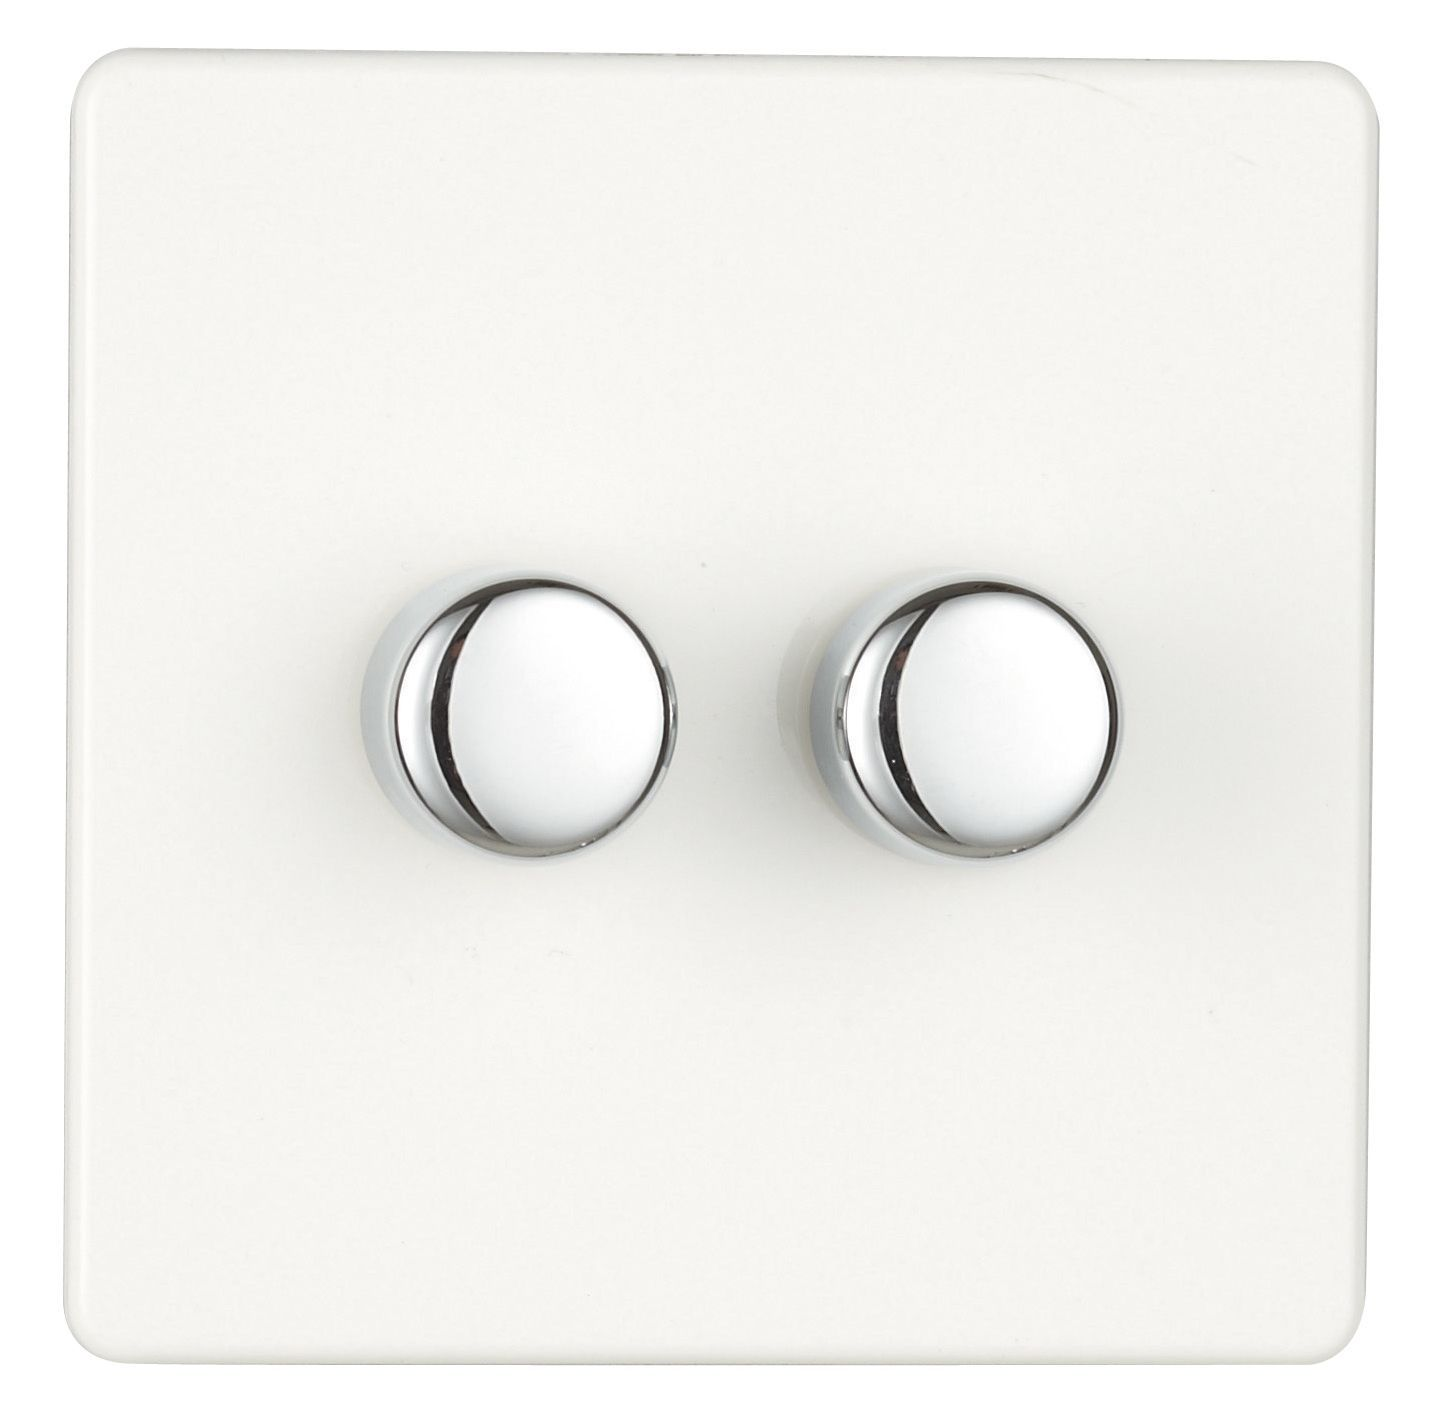 Varilight 2 Way Double Ice White Gloss Dimmer Switch In 2018 And Gang Push On Off With Rotary Dimming 250w Departments Diy At Bq